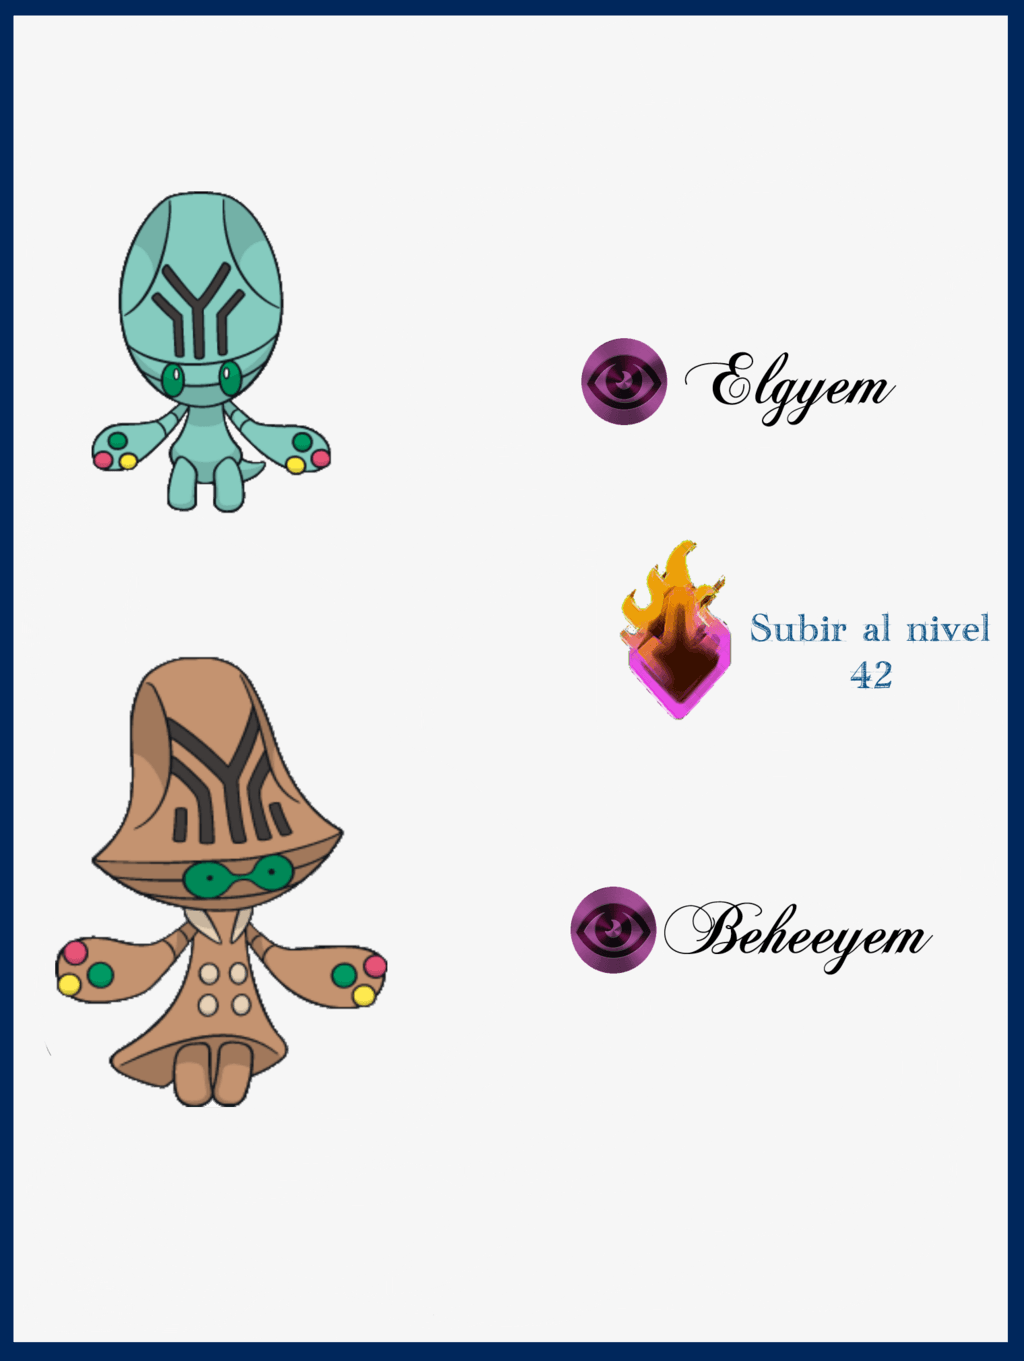 Images of Elgyem Evolution Chart - #SpaceHero